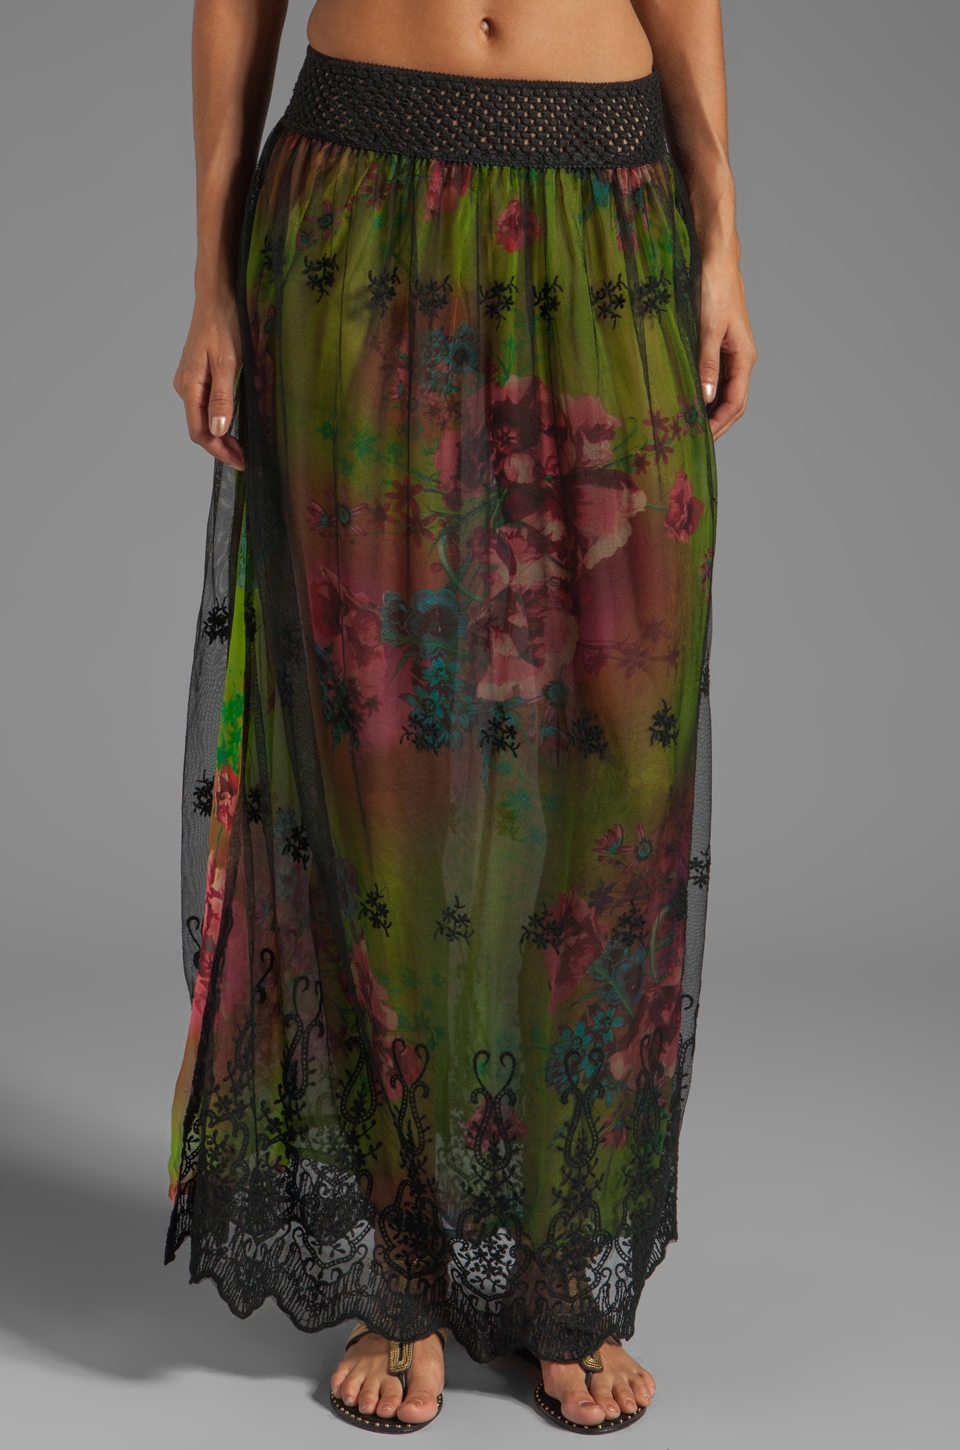 Gypsy Junkies Santana Slit Maxi Skirt in Lime Neon Bloom